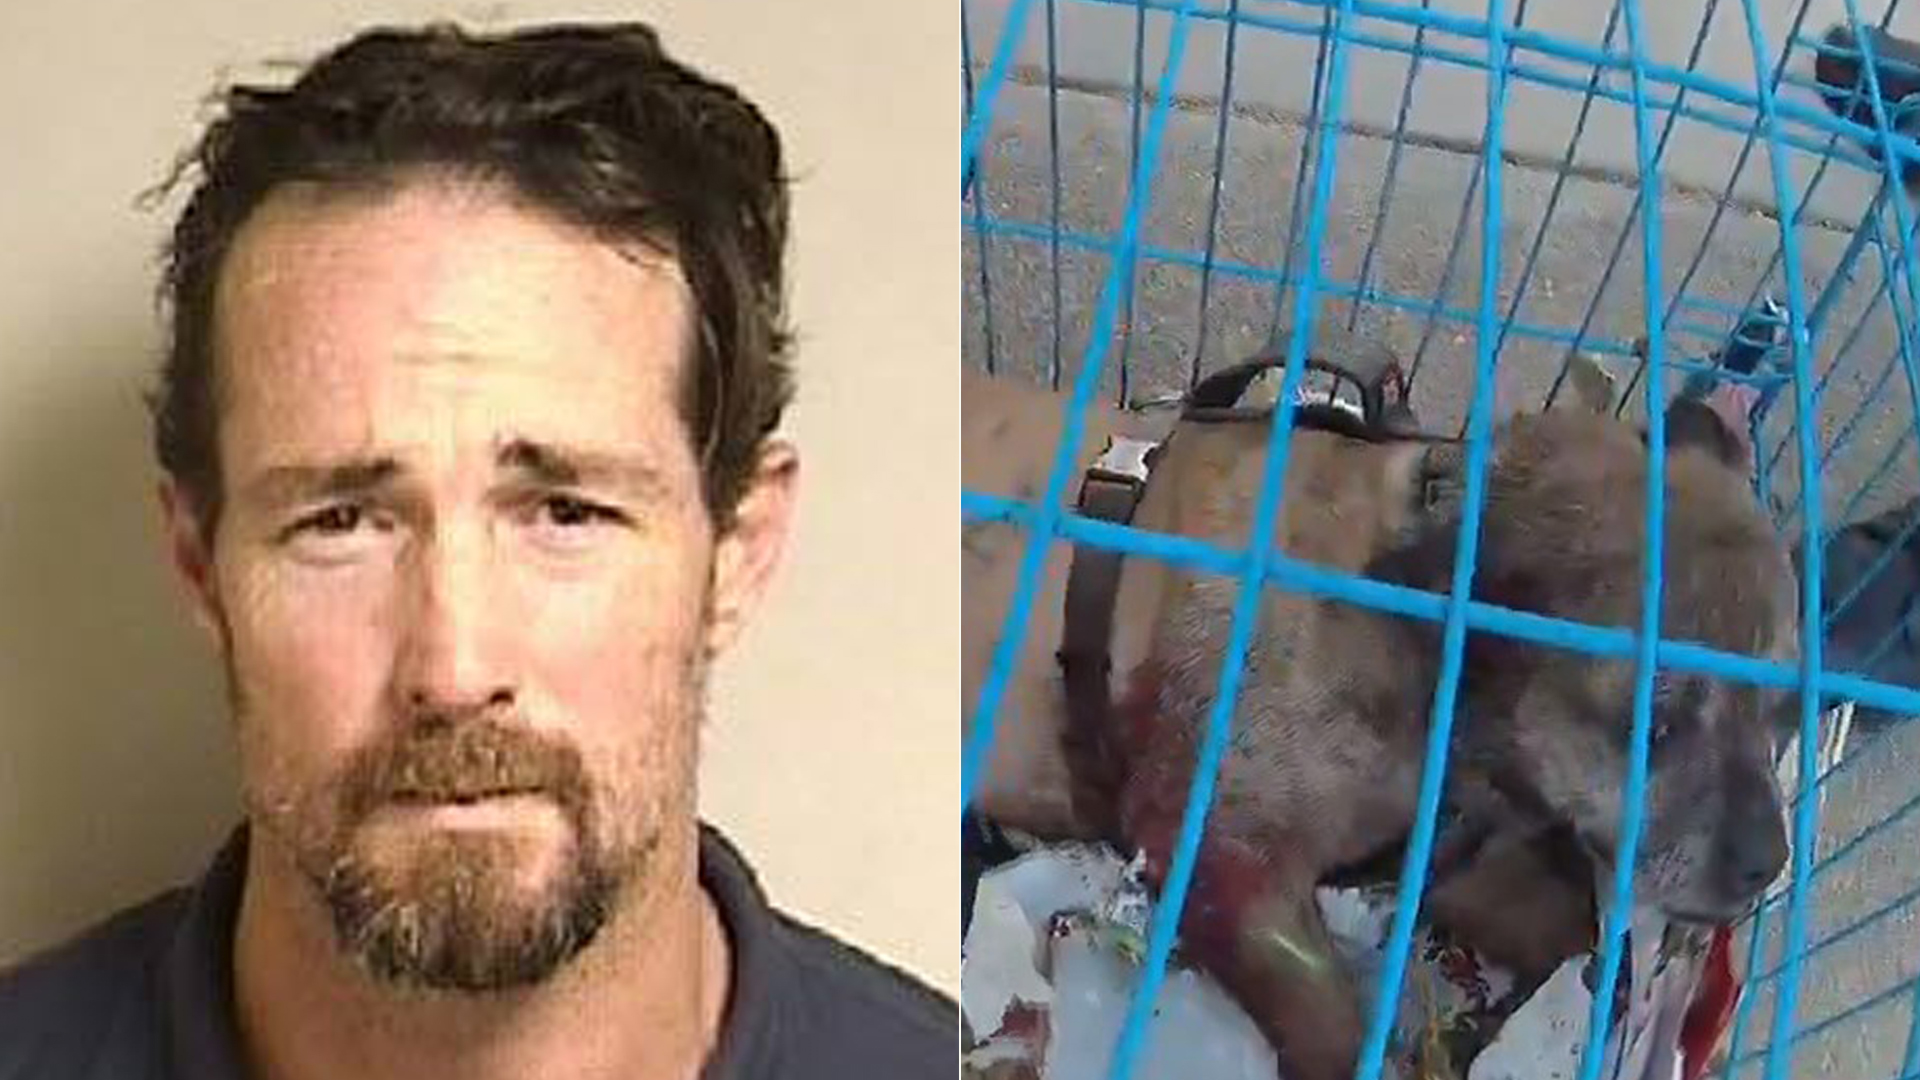 Jeremiah Weberling is pictured next to a photo of one of the 10 dogs he is accused of abusing. He was arrested on suspicion of animal cruelty in Concord, Calif. on May 3, 2019. (Credit: Concord Police Department via Facebook)